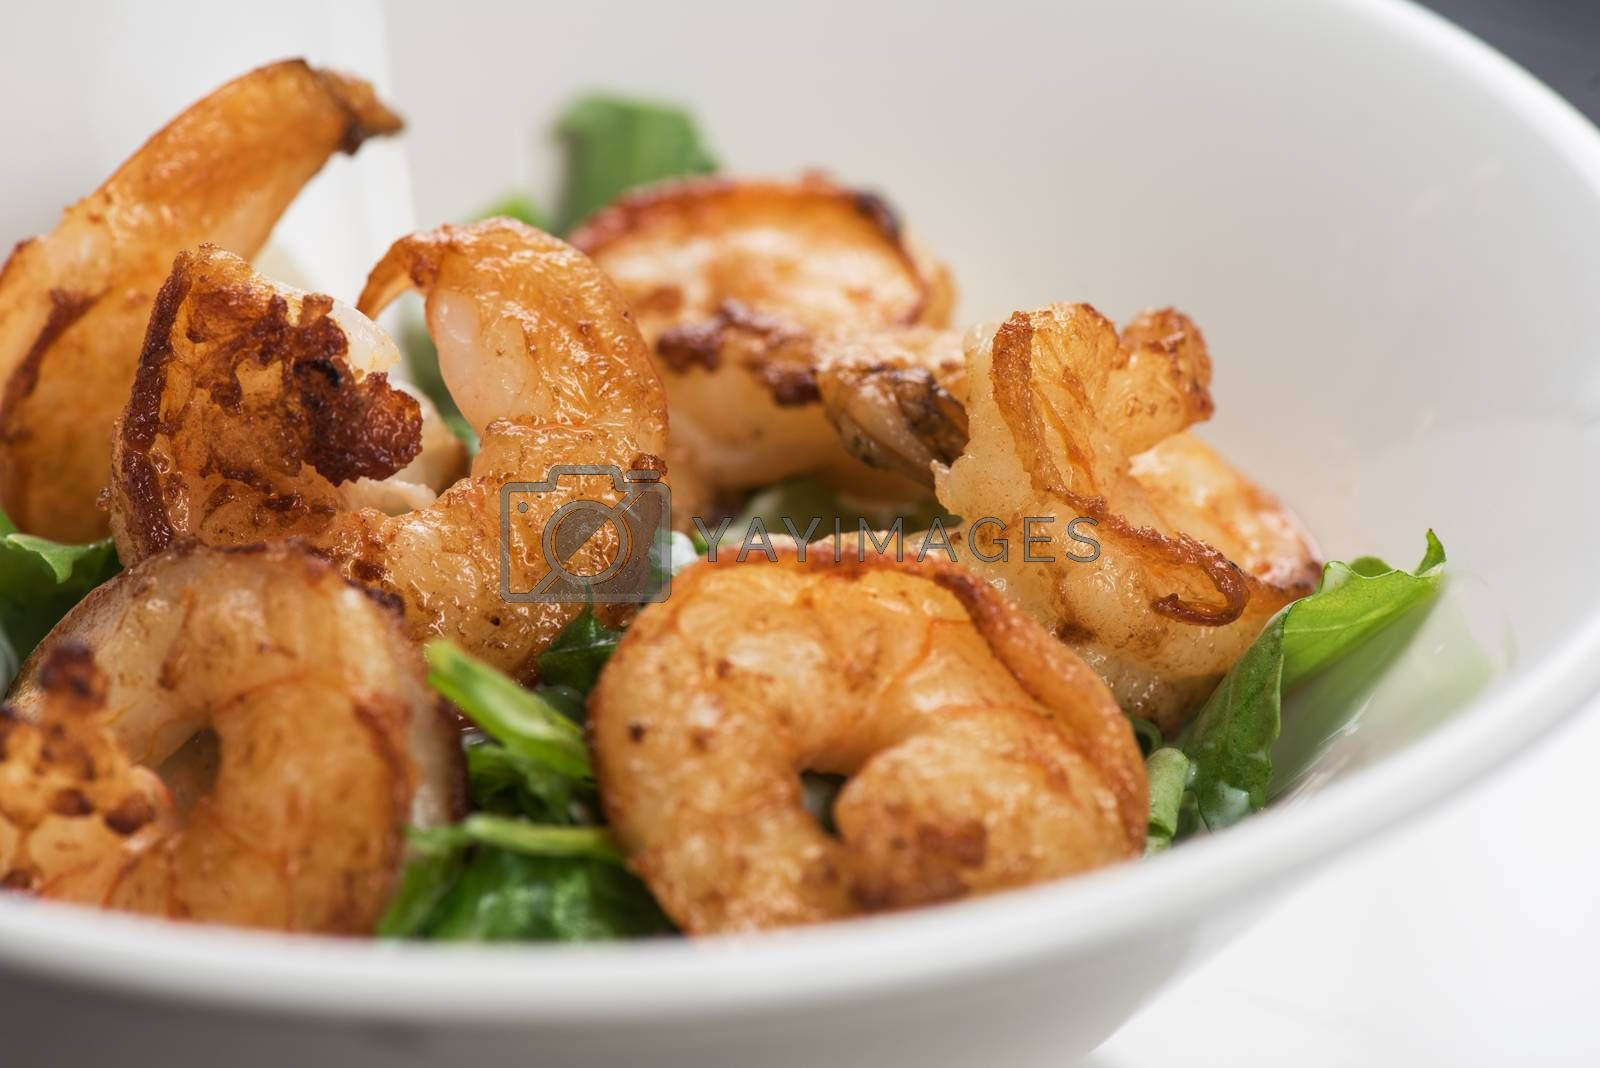 Fried shrimps with yogurt sauce and greens on plate